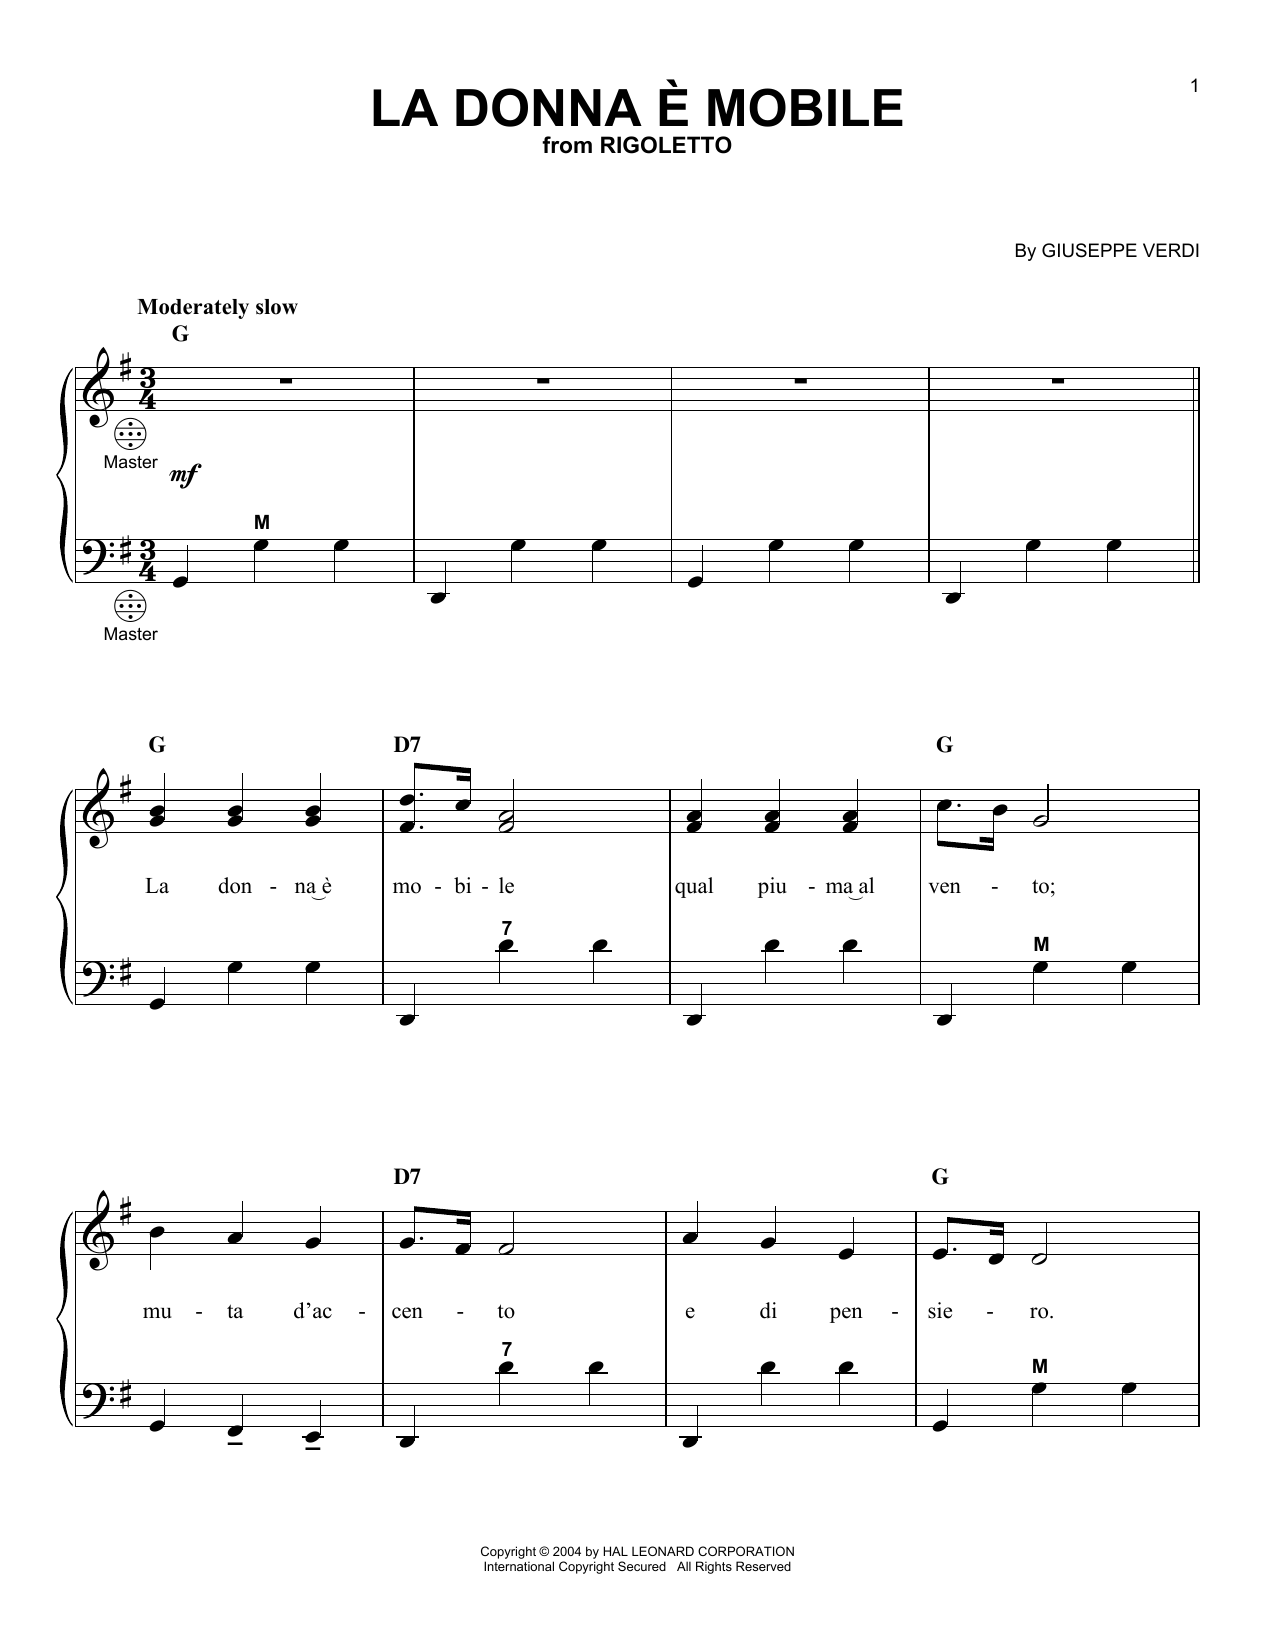 Giuseppe Verdi La donna e mobile sheet music notes and chords. Download Printable PDF.